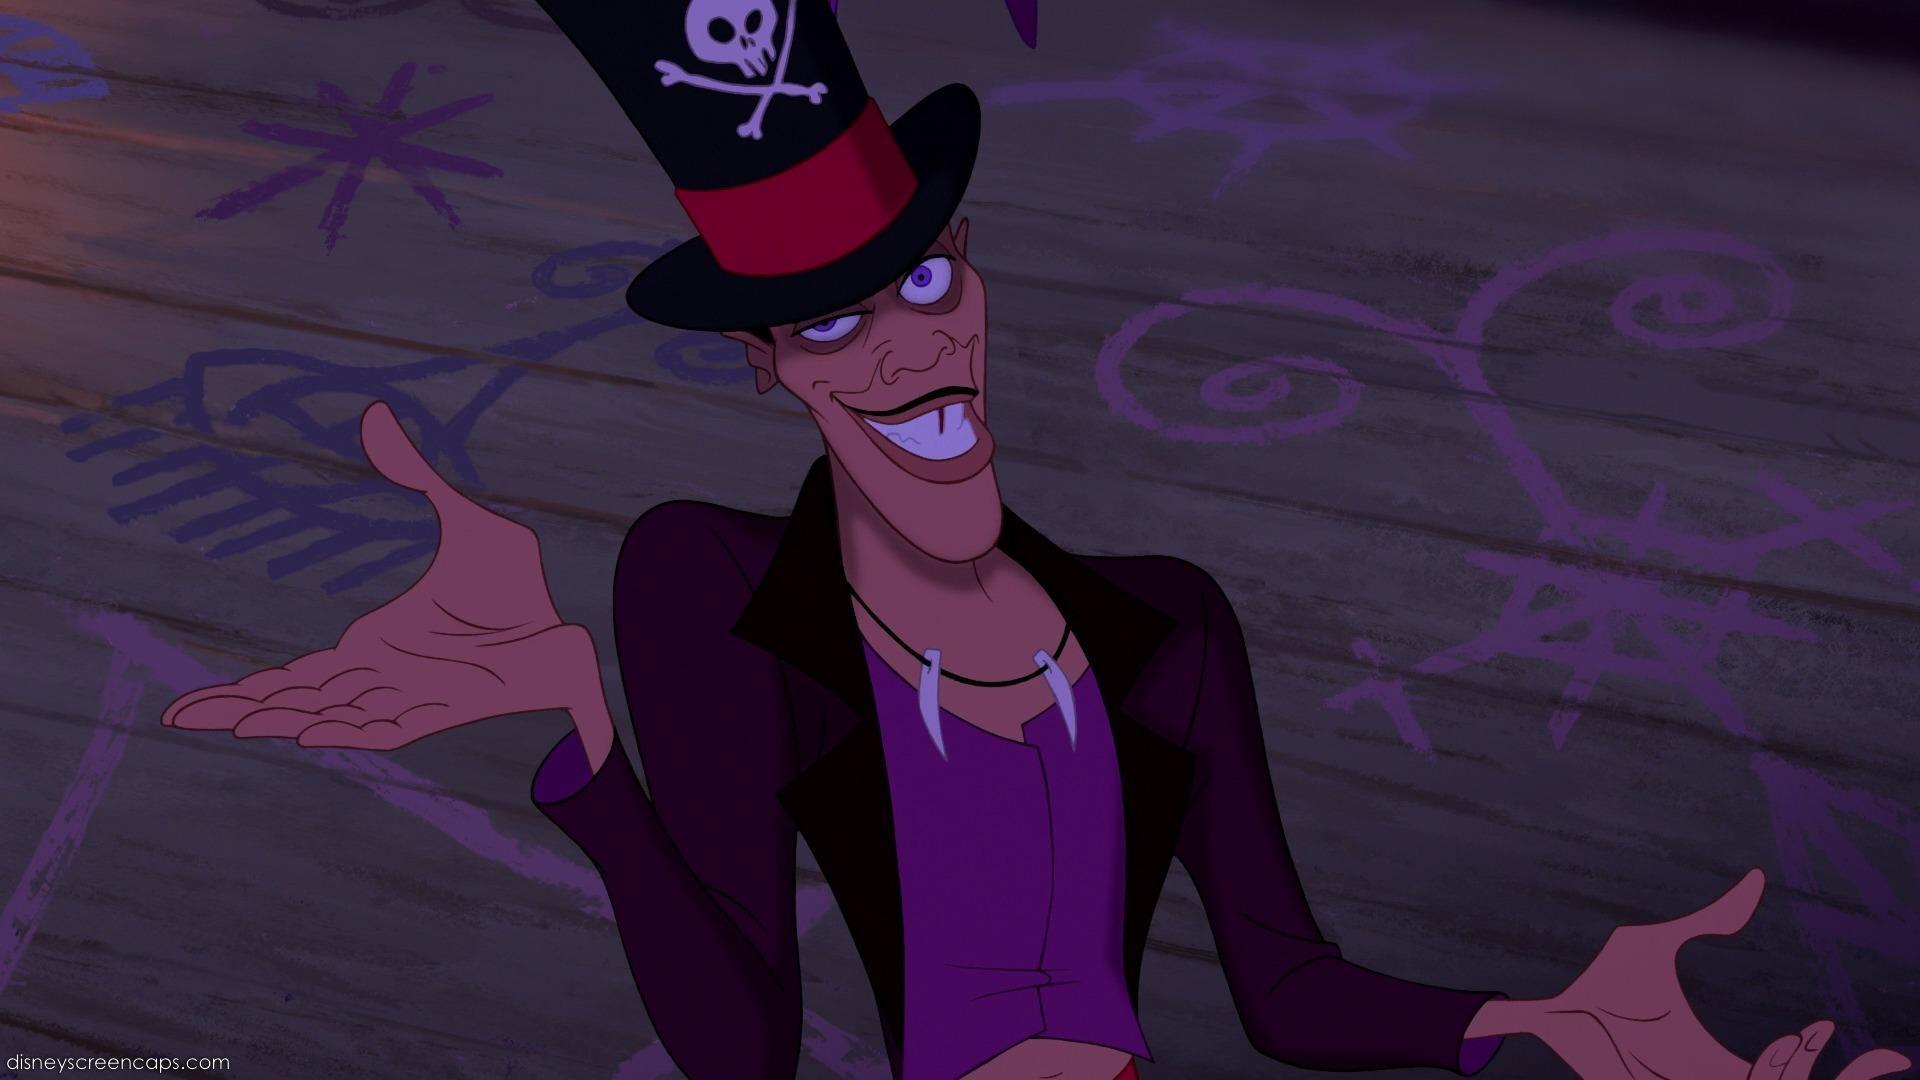 Dr. Facilier (The Princess and the Frog)